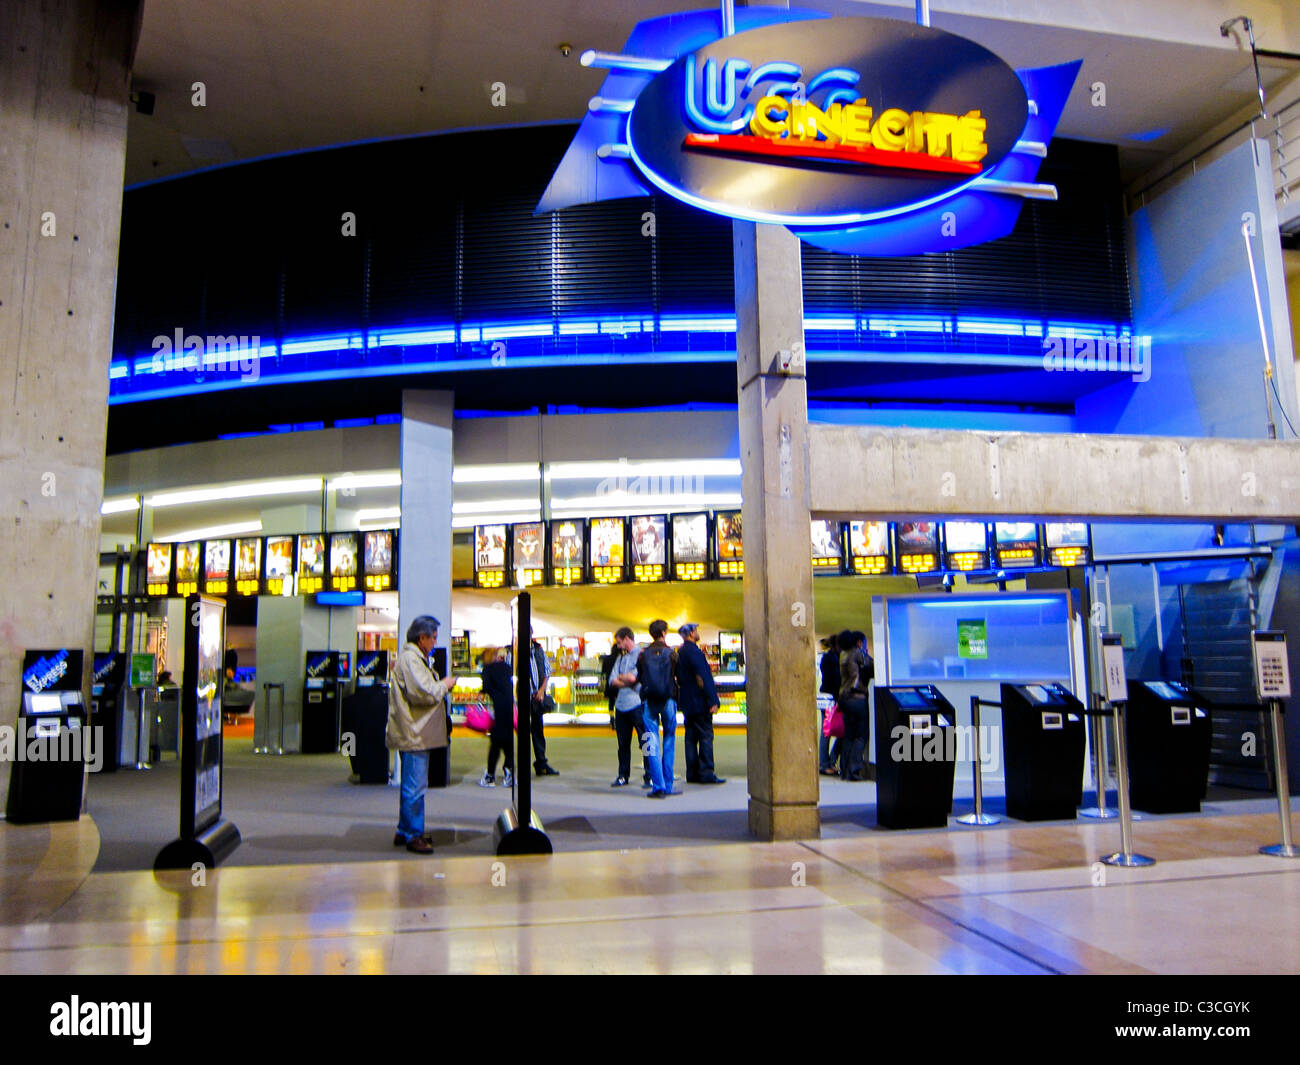 paris france entrance to french ugc cinema complex inside le stock photo 36541447 alamy. Black Bedroom Furniture Sets. Home Design Ideas